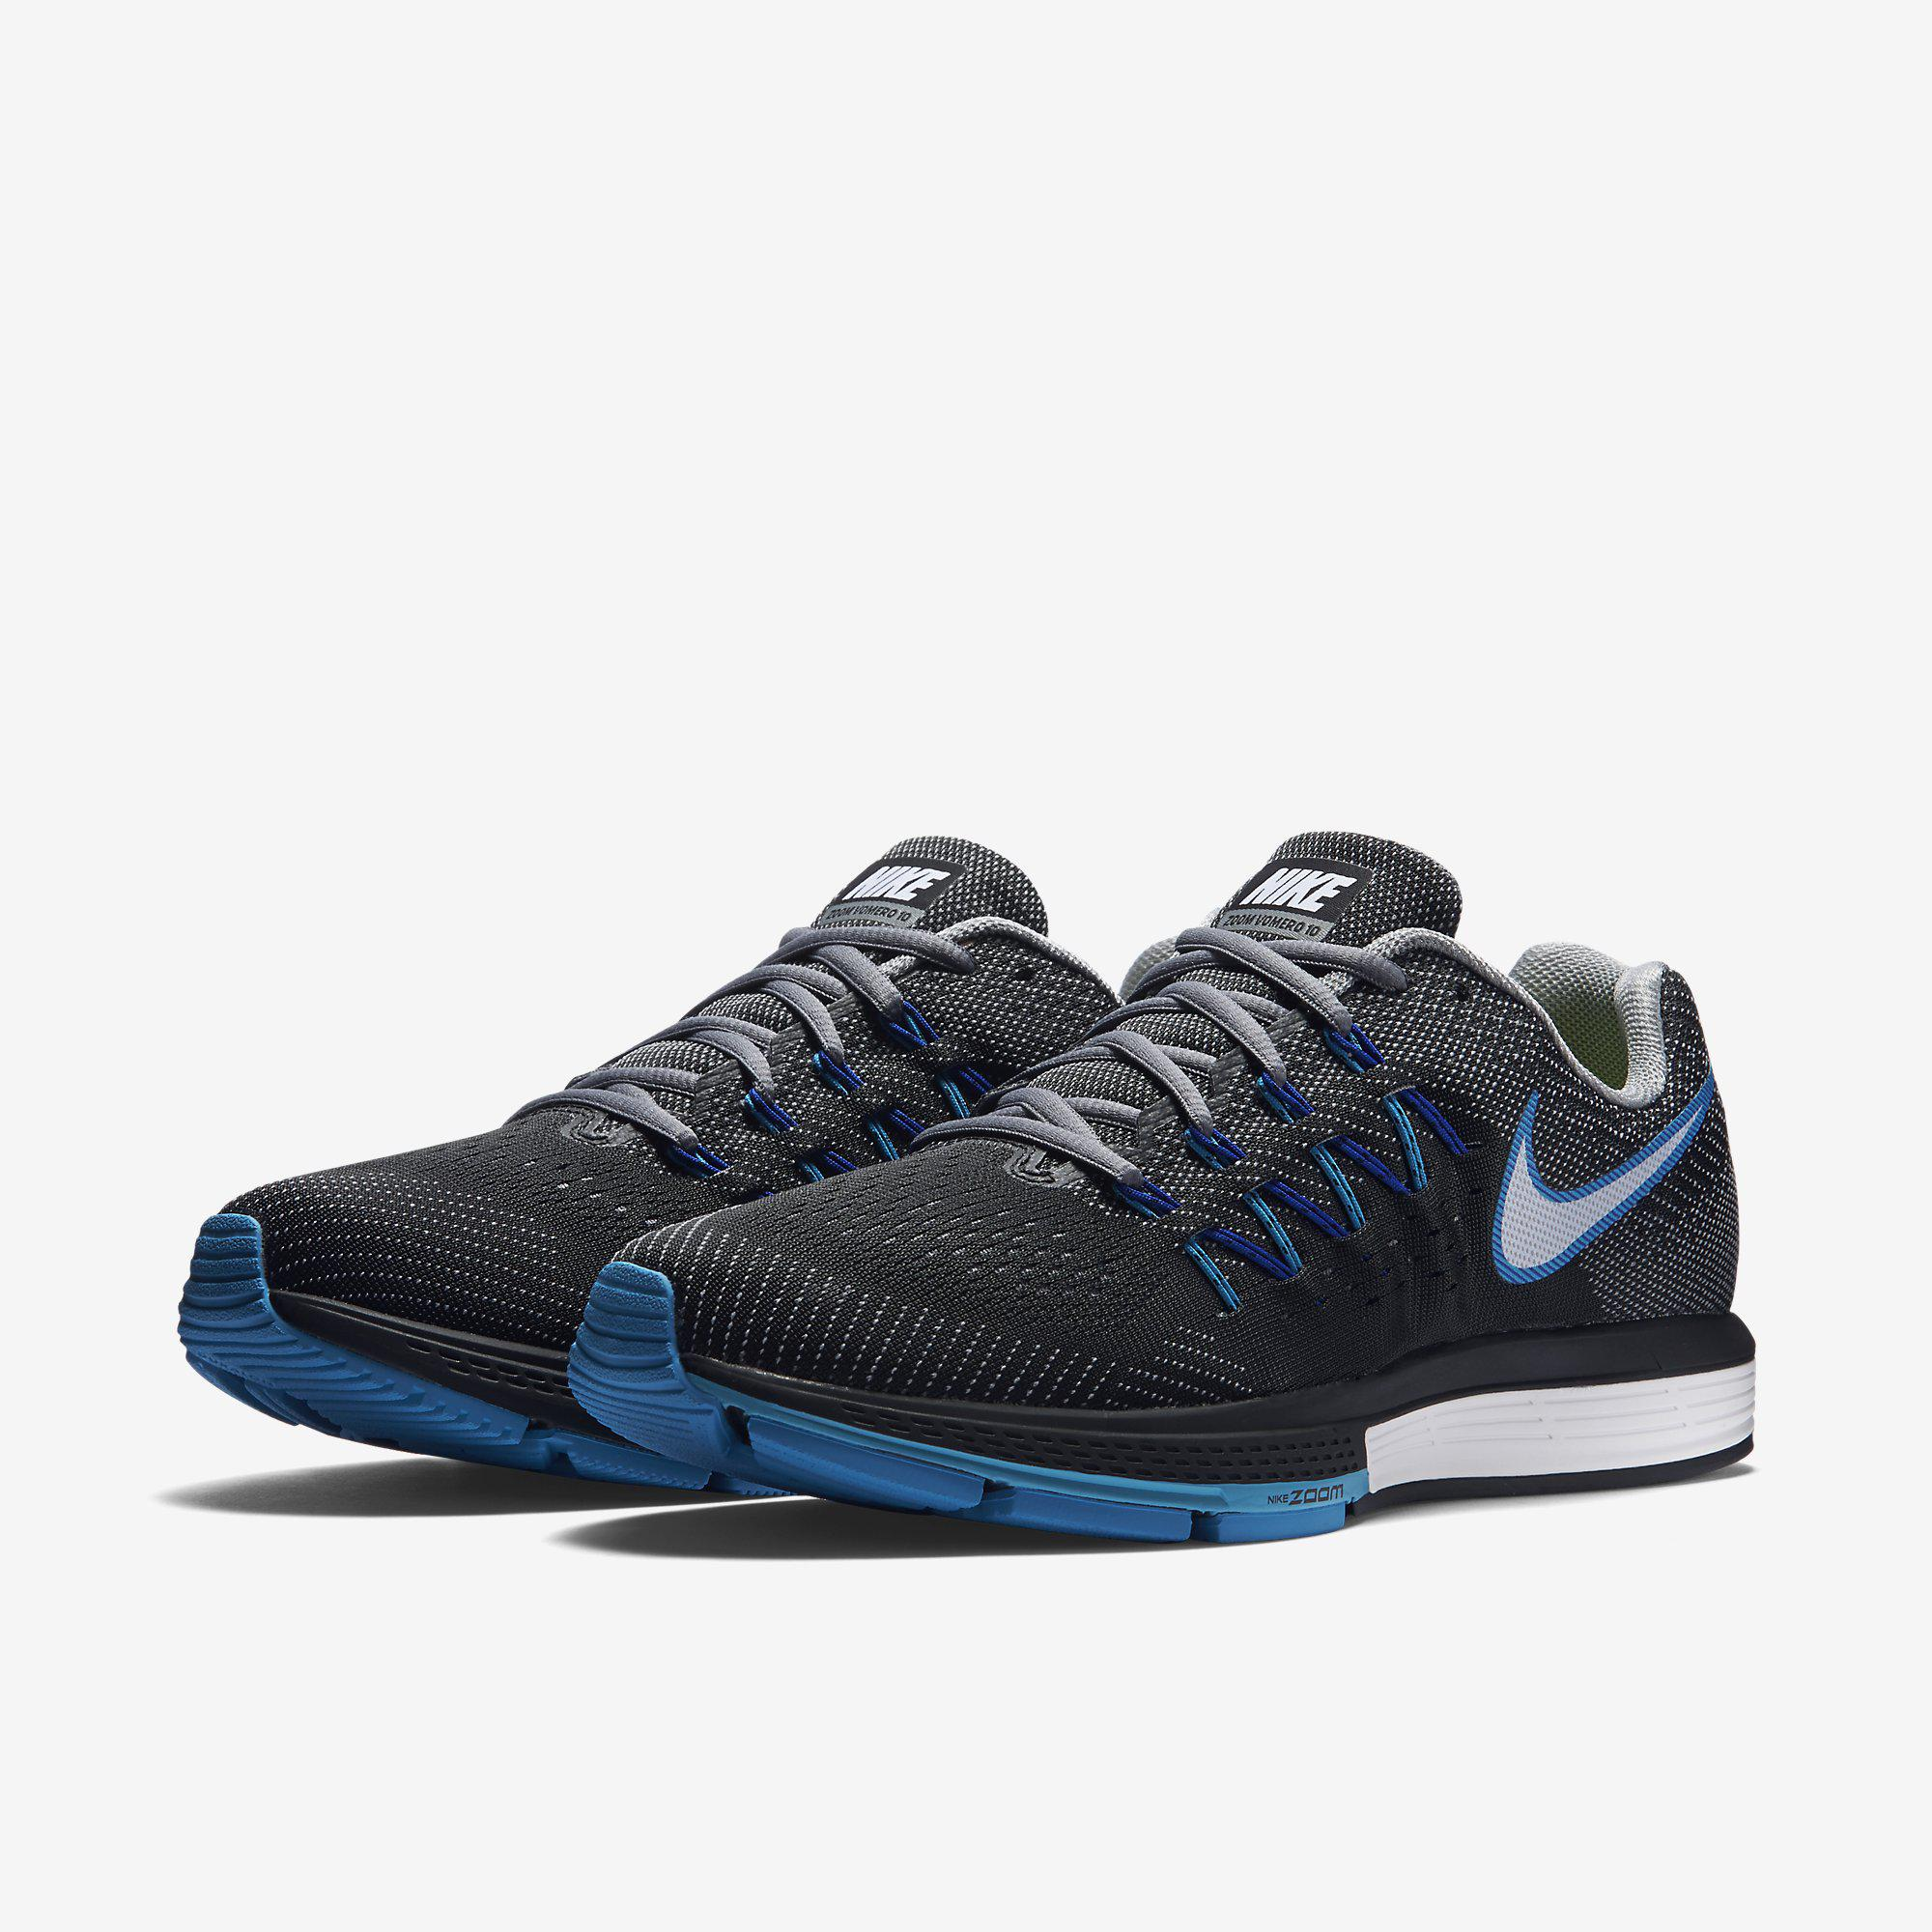 sale retailer 5006e 80a91 Nike Mens Air Zoom Vomero 10 Running Shoes - Cool Grey Black